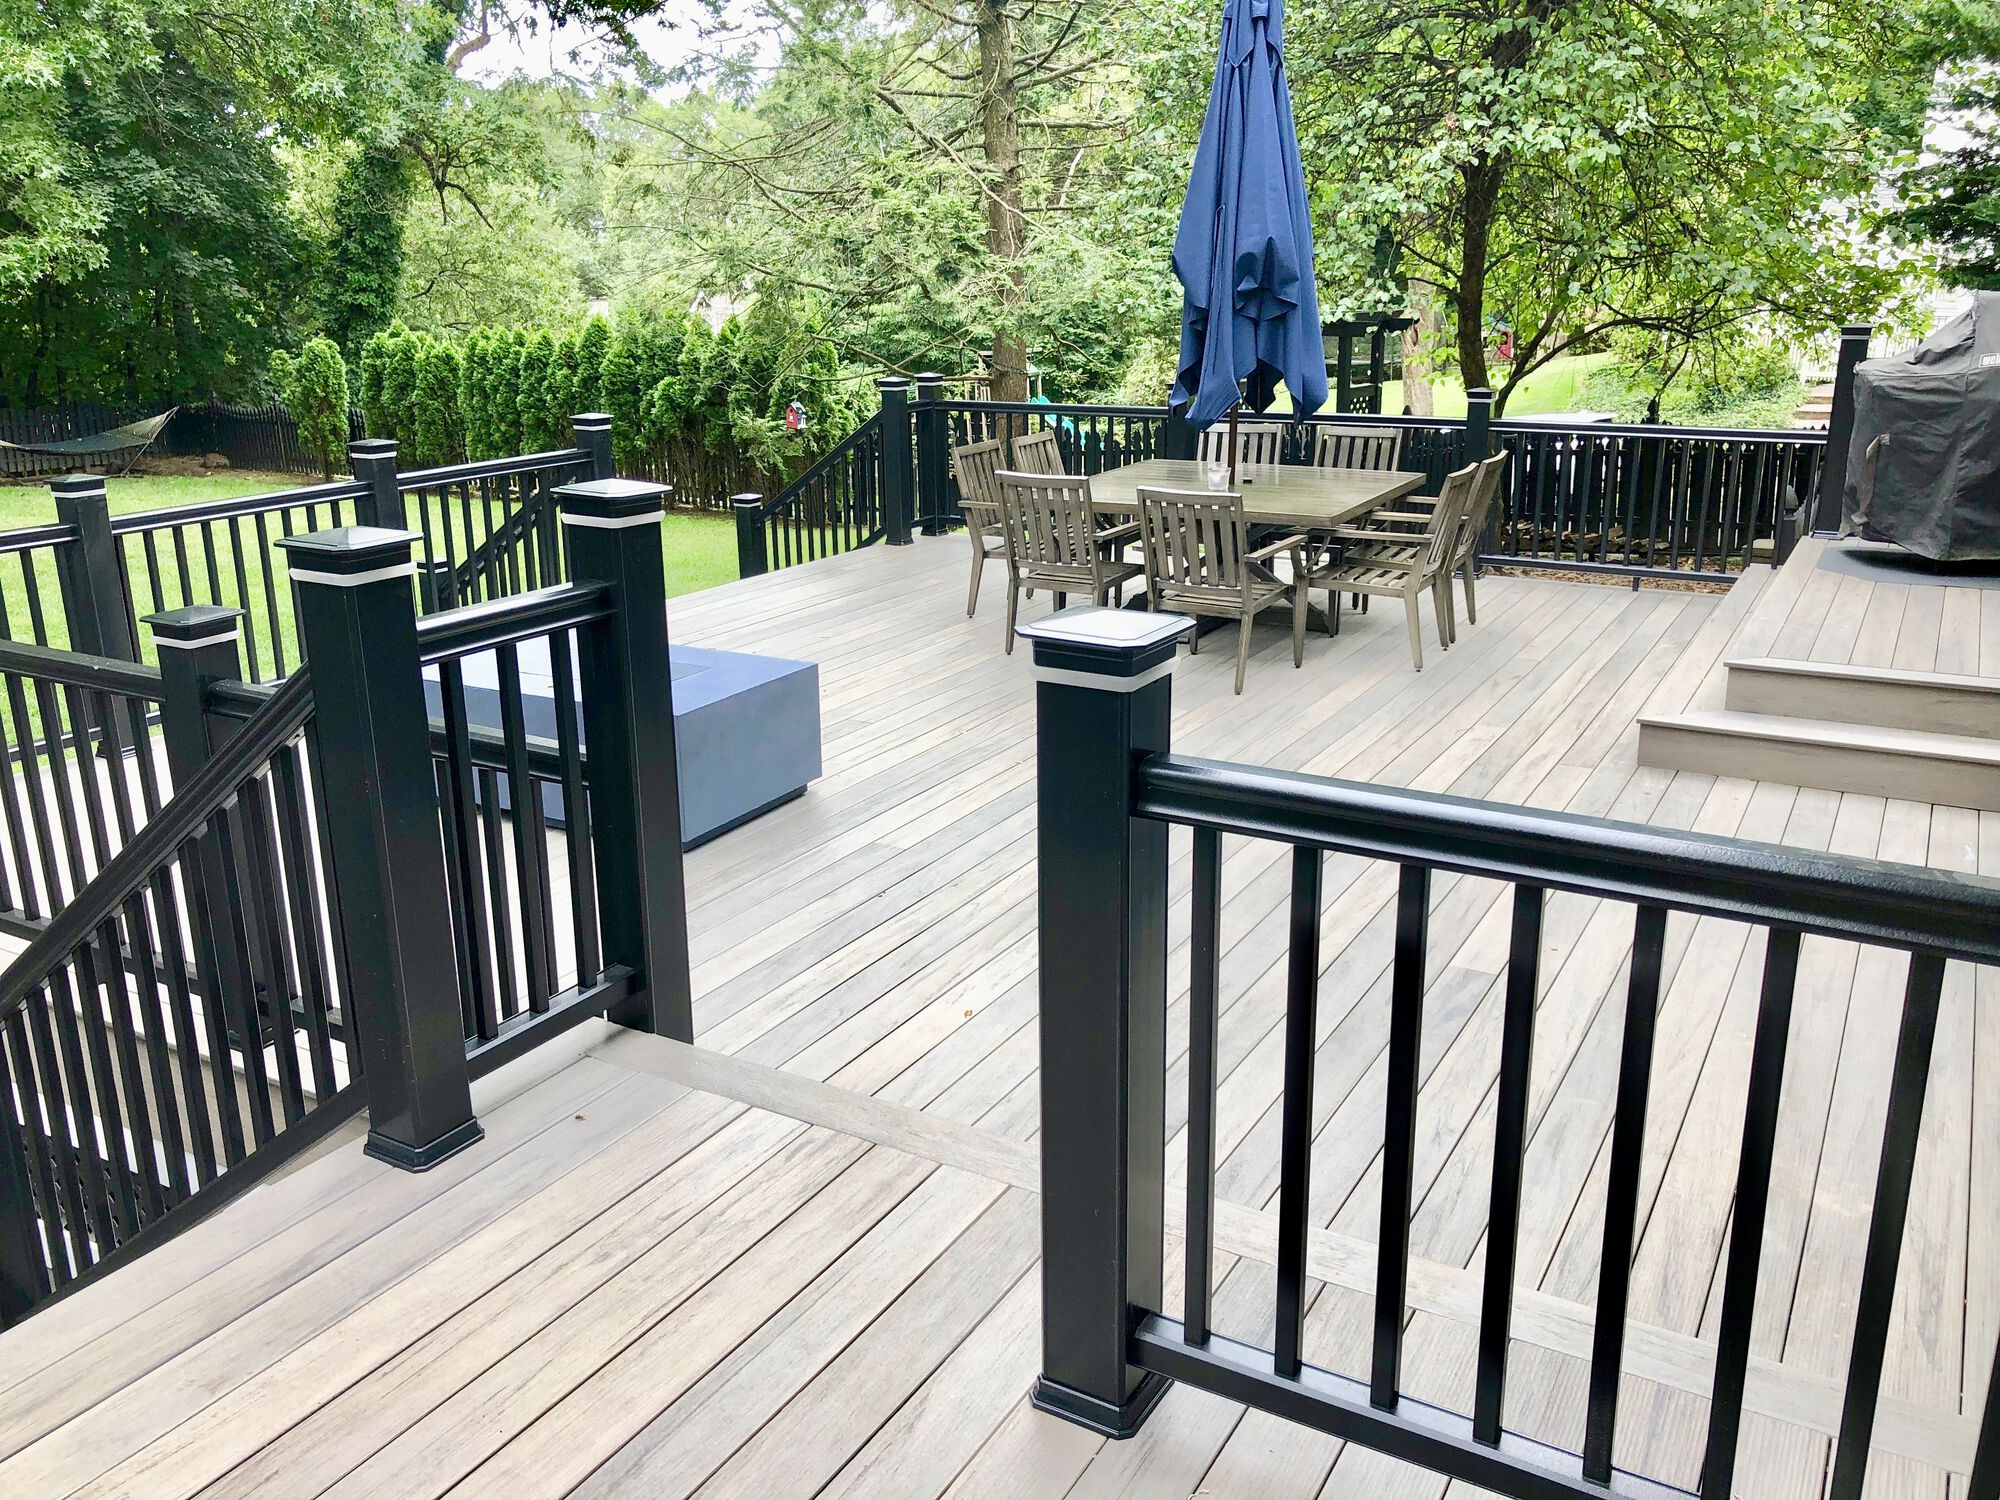 TimberTech Pro Legacy Collection Ashwood Color Decking with Black Radiance Rails, LED Post Cap Lighting in Glen rock, Bergen County NJ